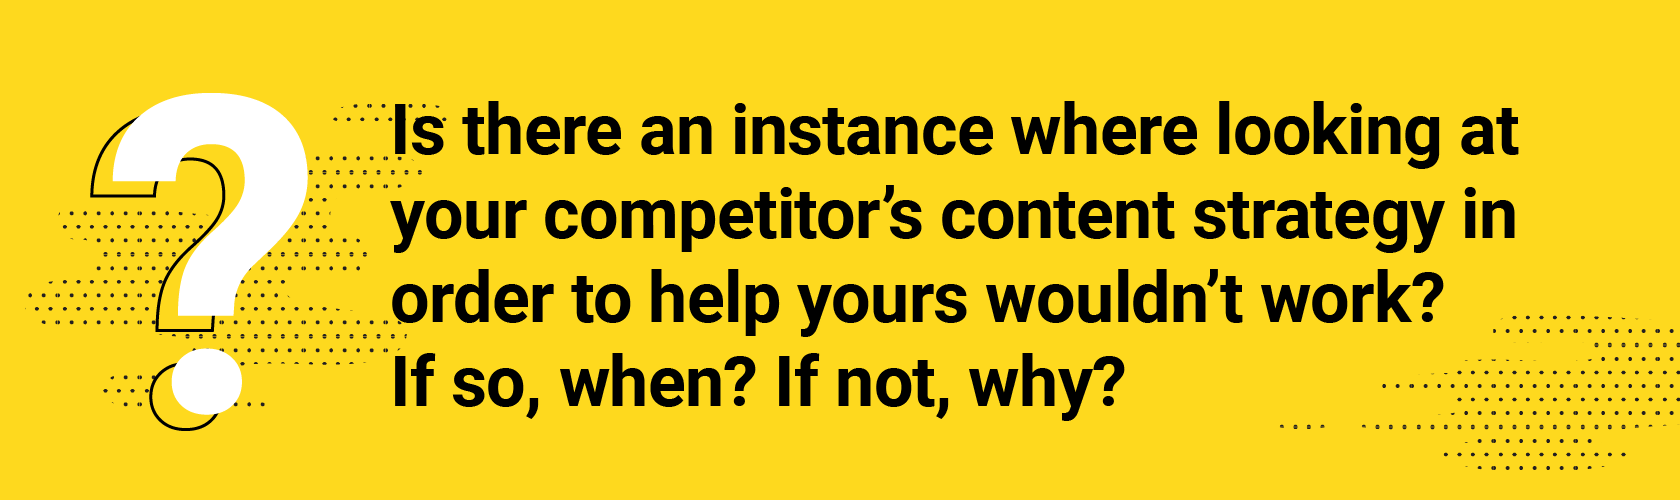 Q3. Is there an instance where looking at your competitor's content strategy in order to help yours wouldn't work? If so, when? If not, why?